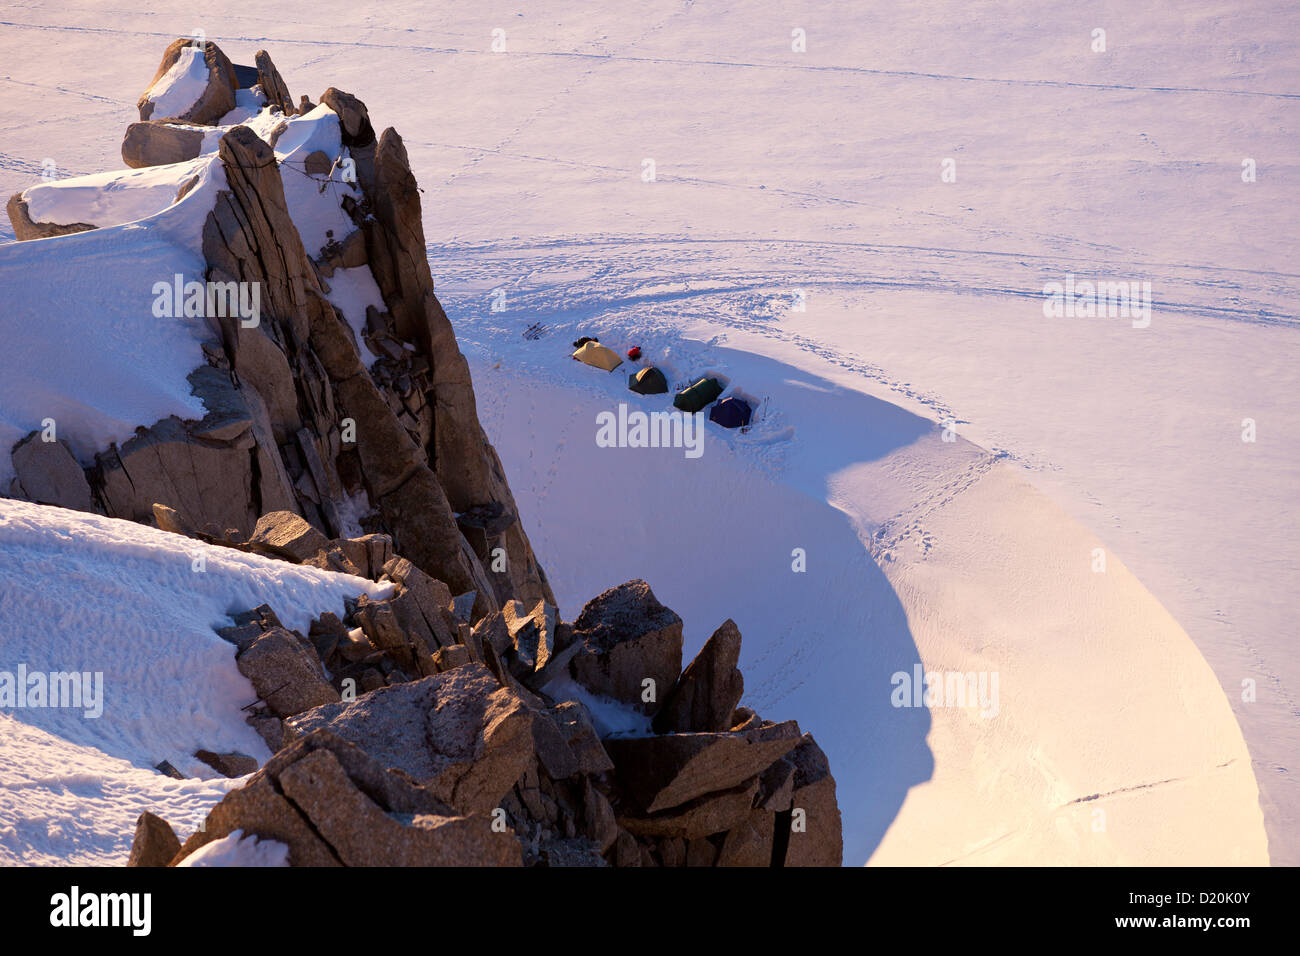 High angle view of base camp underneath Aiguille du Midi, Chamonix Mont Blanc, France, Europe - Stock Image